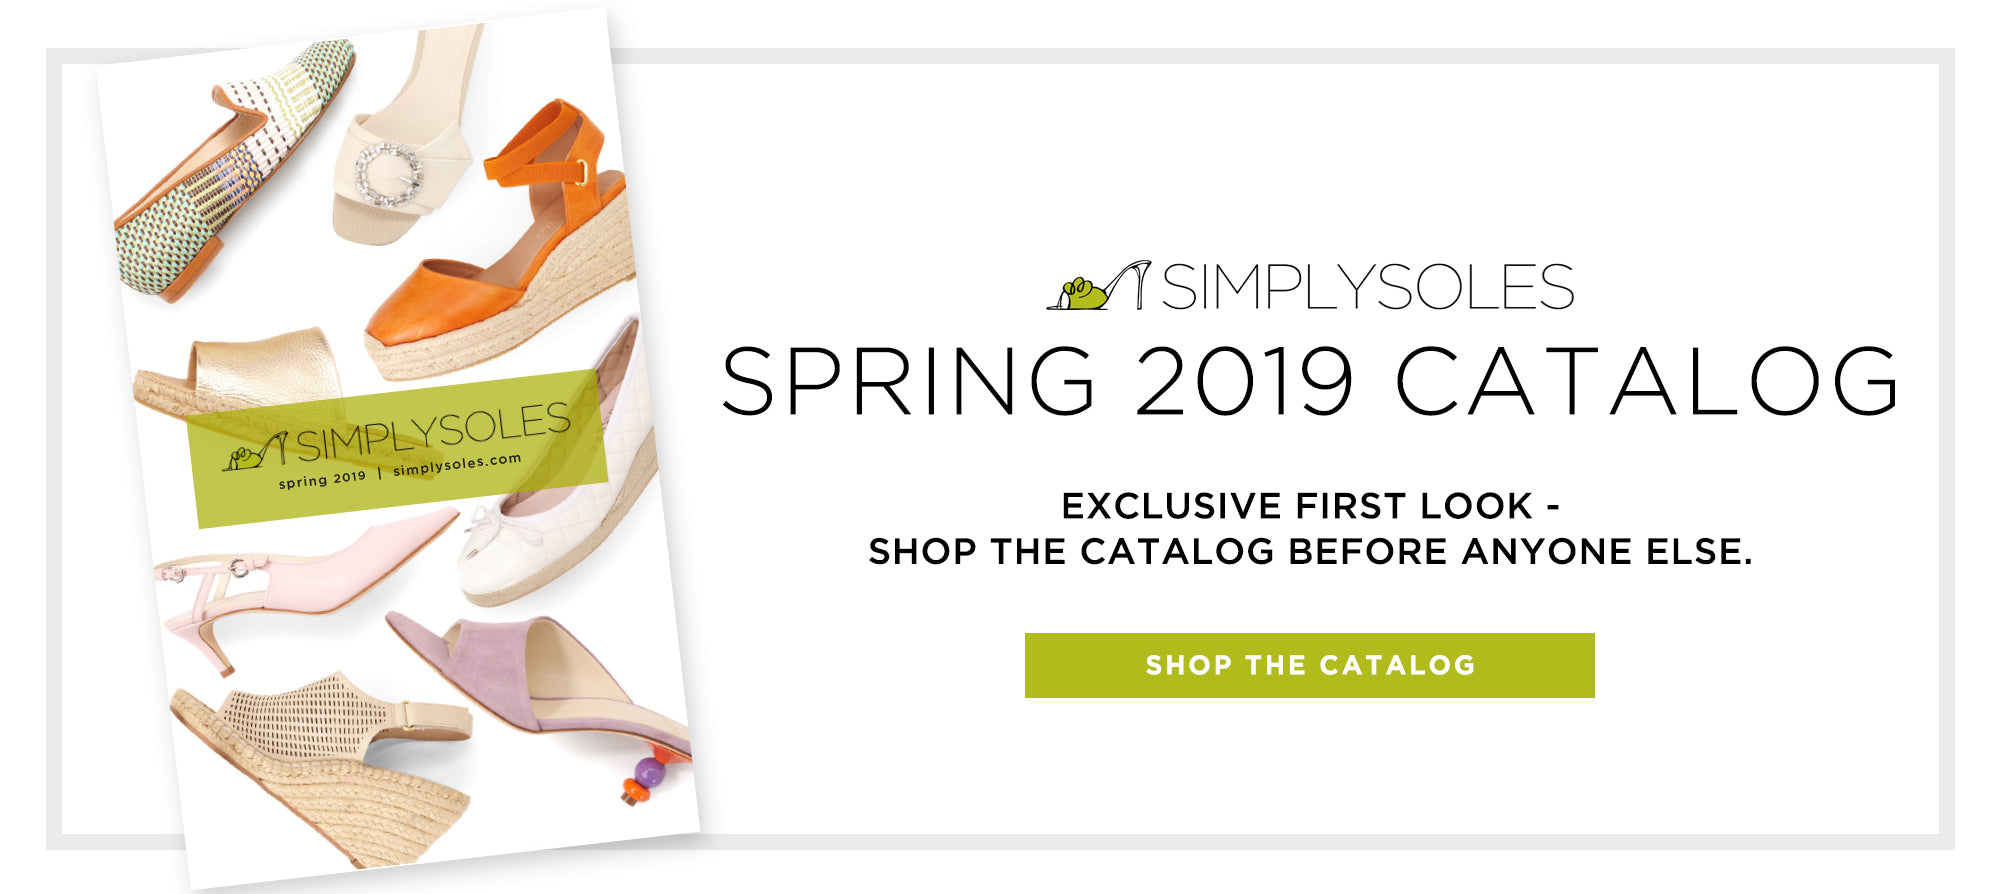 Shop the new catalog featuring Jon Josef for SimplySoles Spring Collection